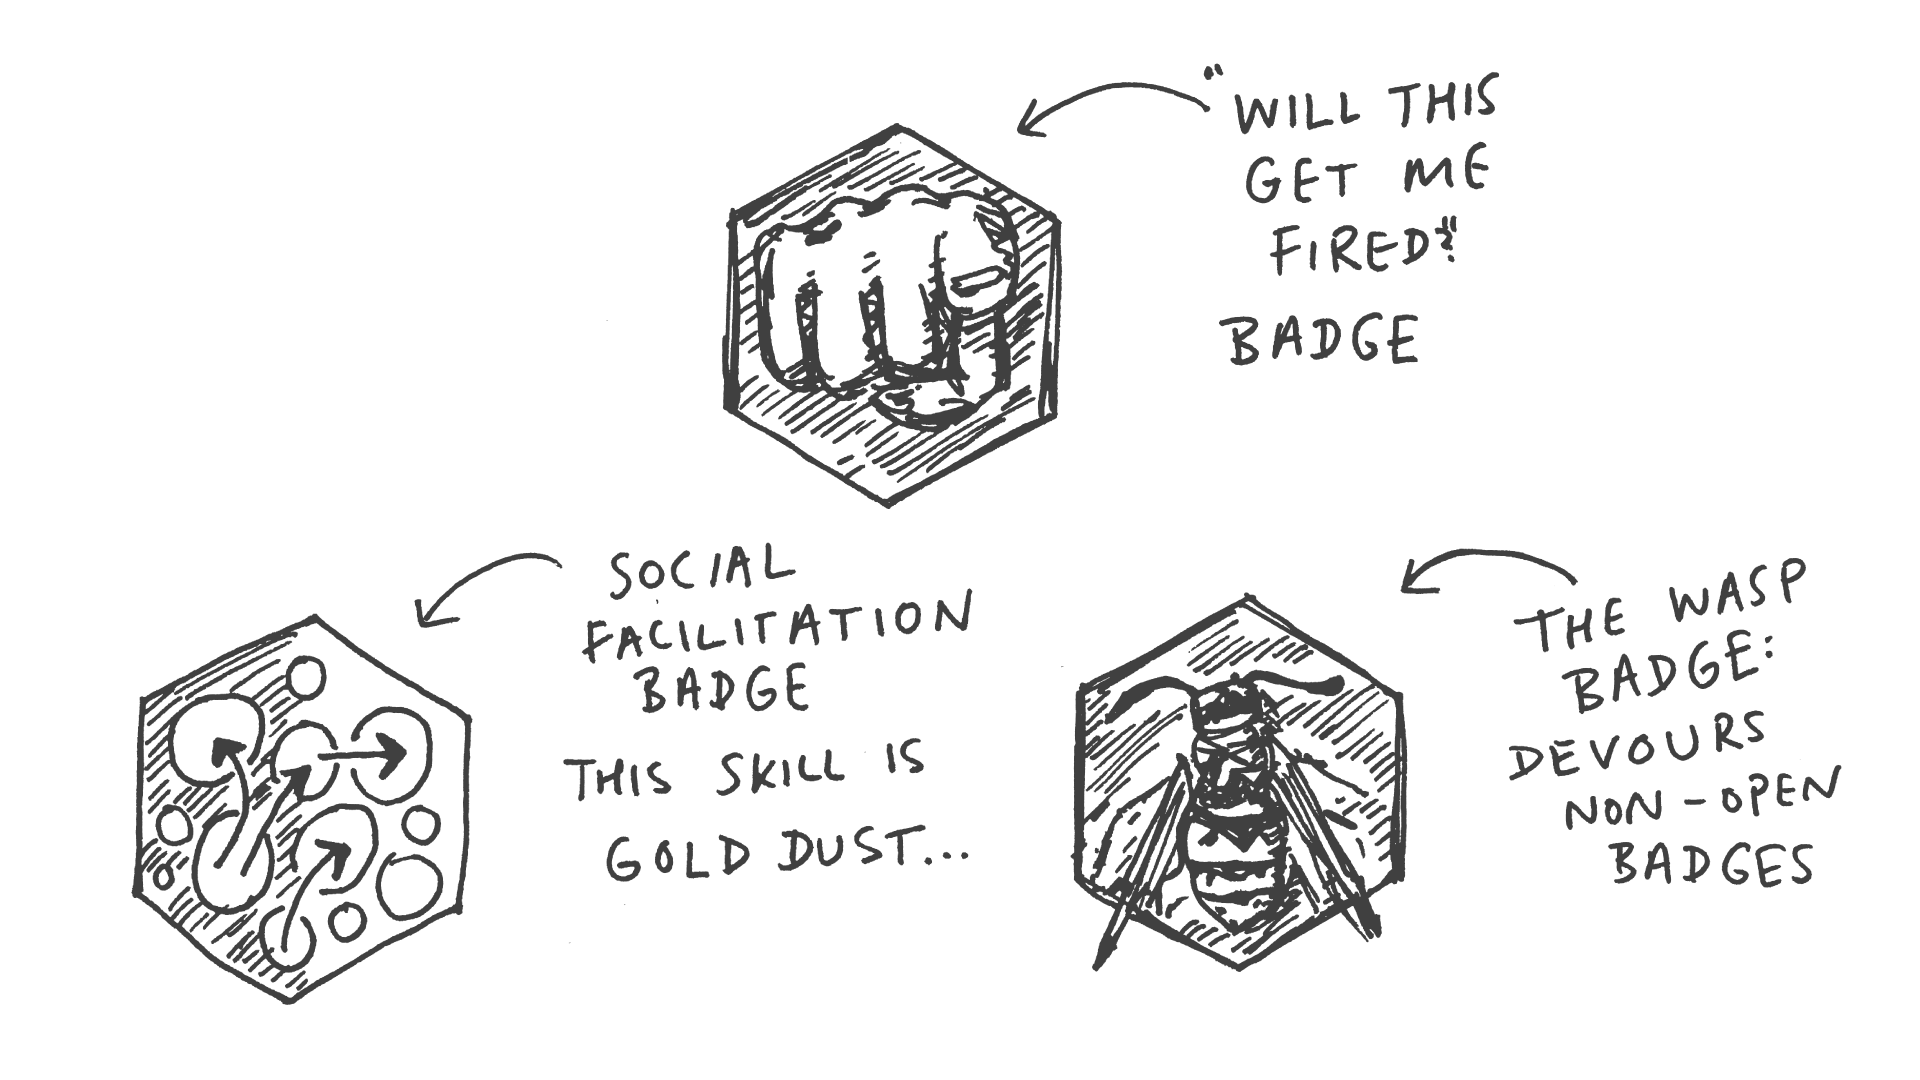 dialogue badges